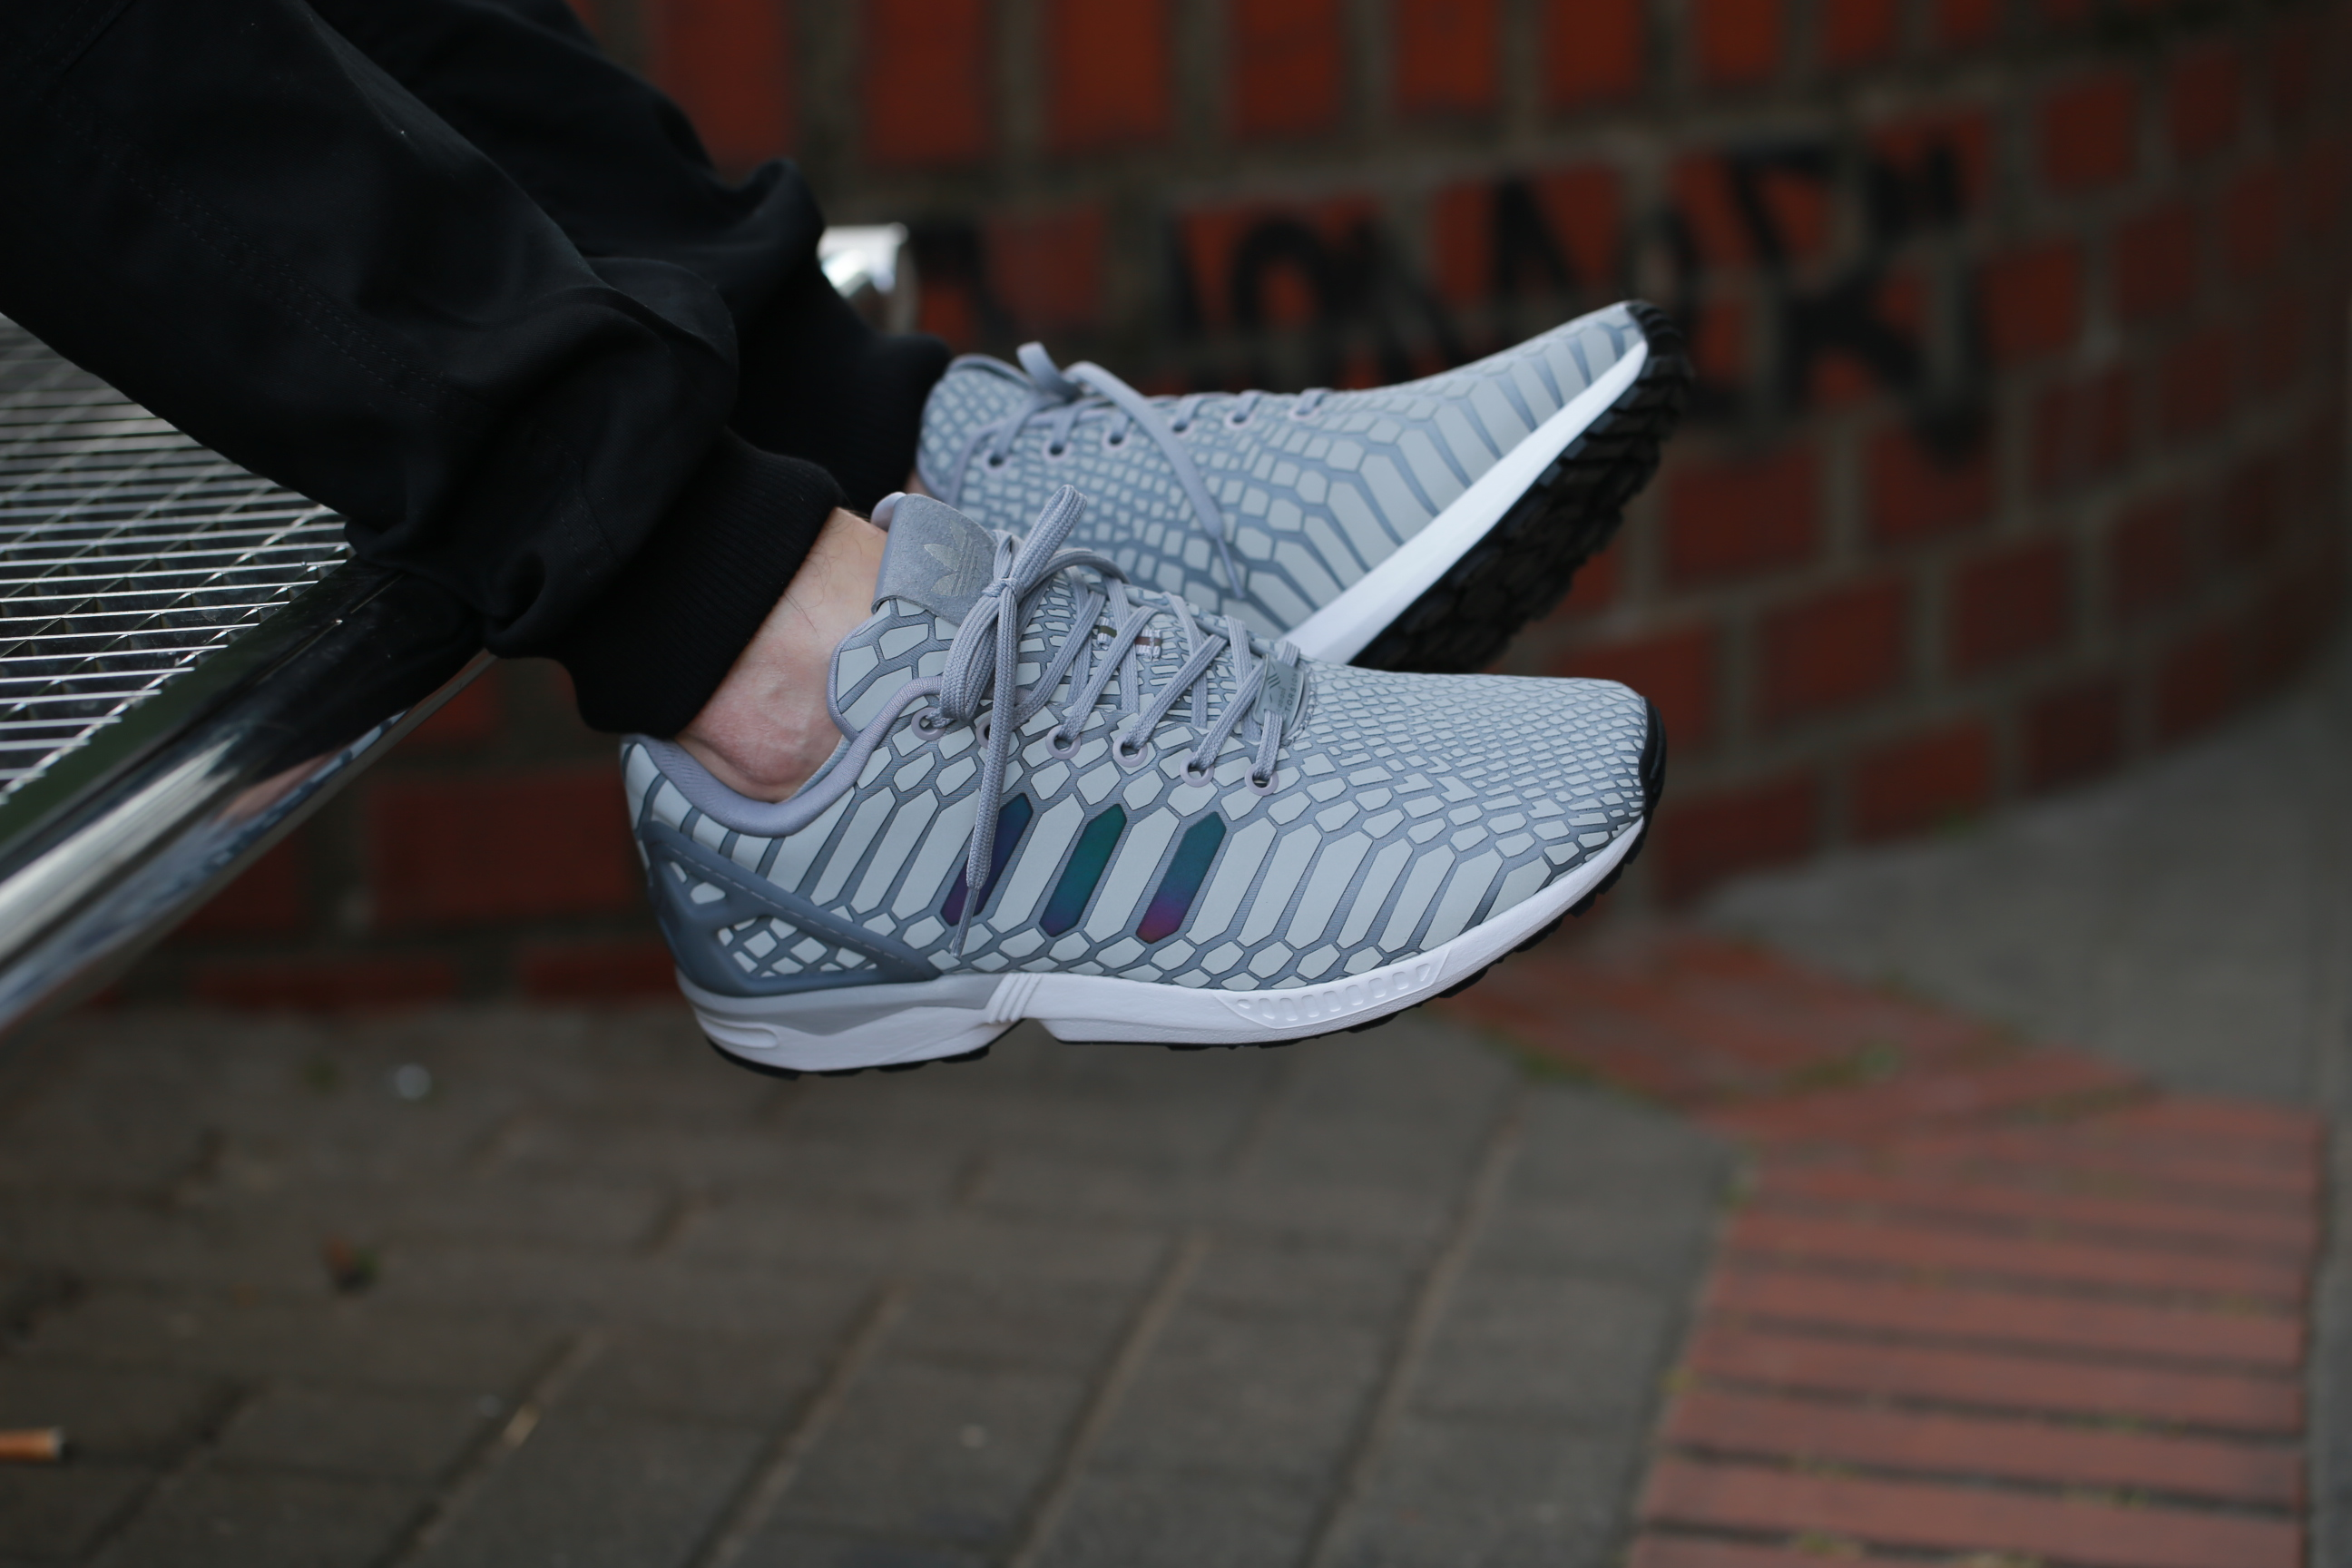 super cute a7ab3 9510d sale reflective adidas zx flux aq4534 white green running shoes mens 3m  glow 11 ebay f090b d1b5a  czech b60p4904 b60p4853 b60p4858 b60p4972  b60p4891 23c95 ...